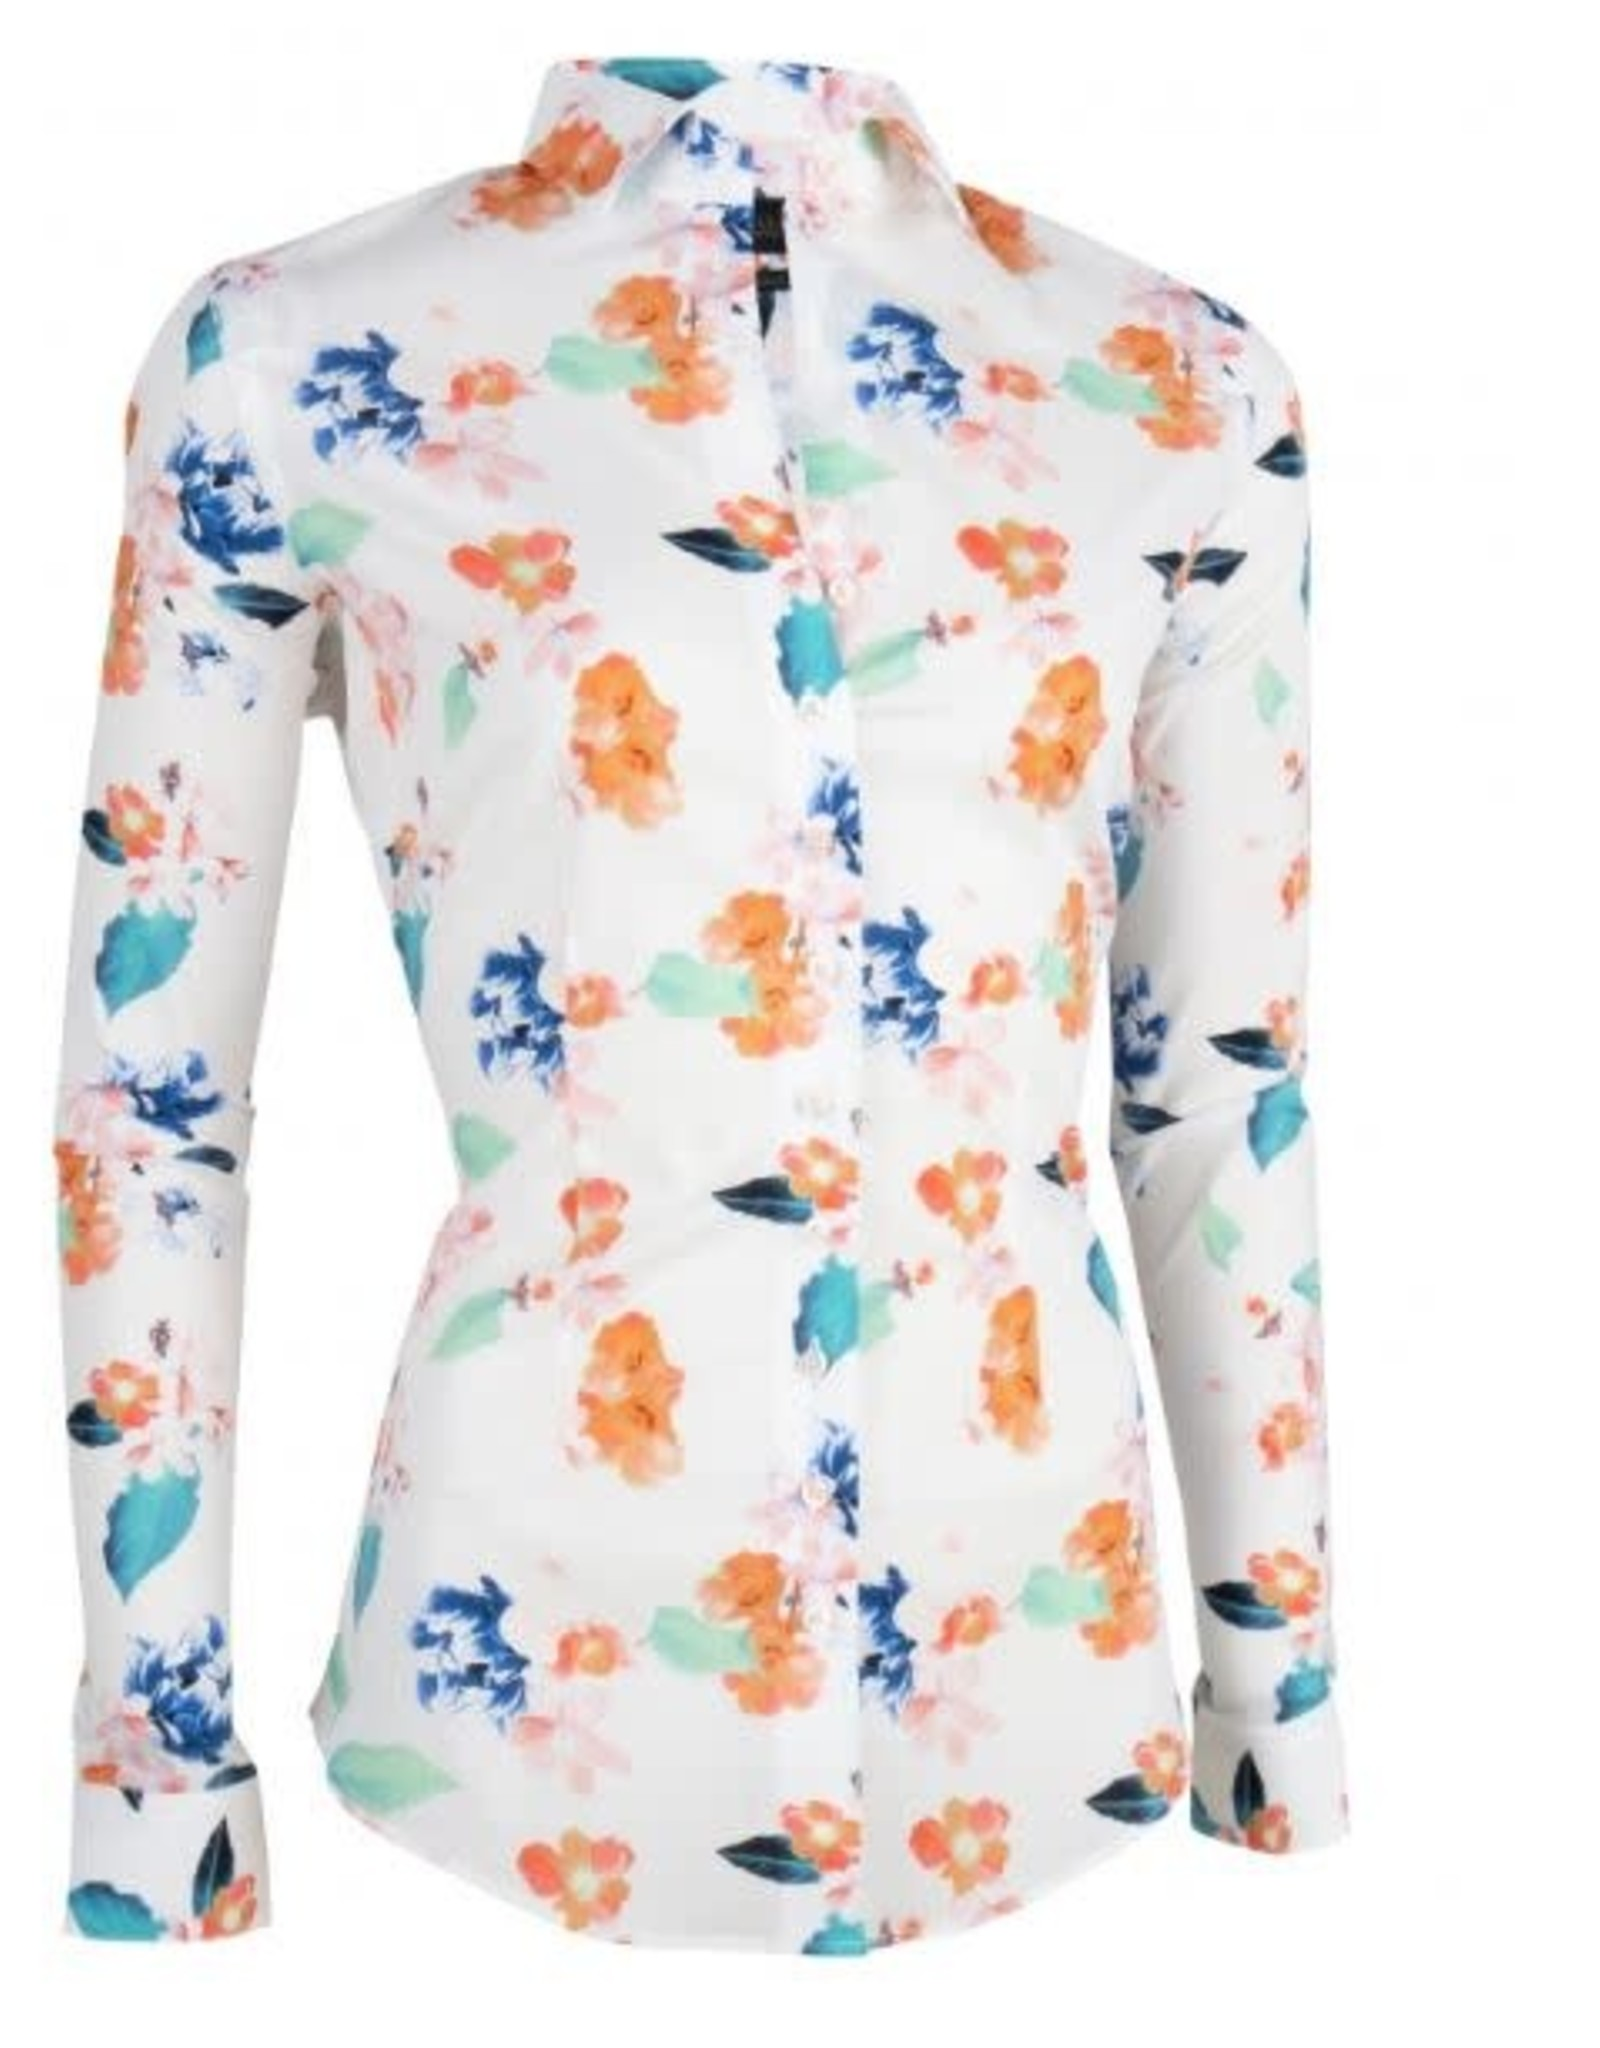 Cavallaro Blouse Ladies Verla